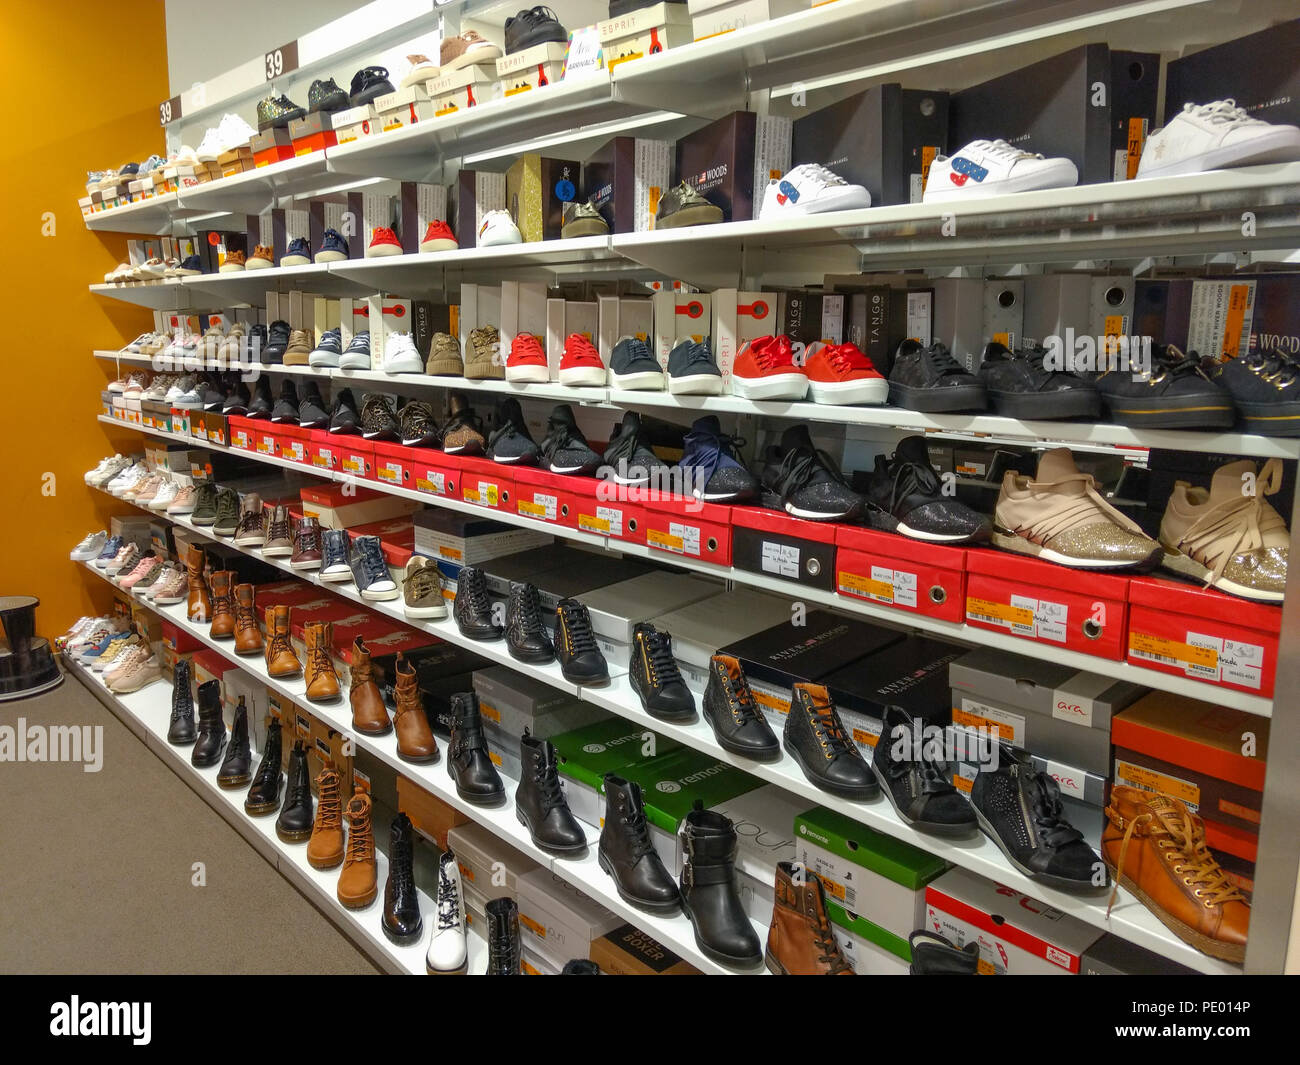 3c2200b3dbf71 Women's shoes displayed on shelves in shoe store. There is a sale going on  so